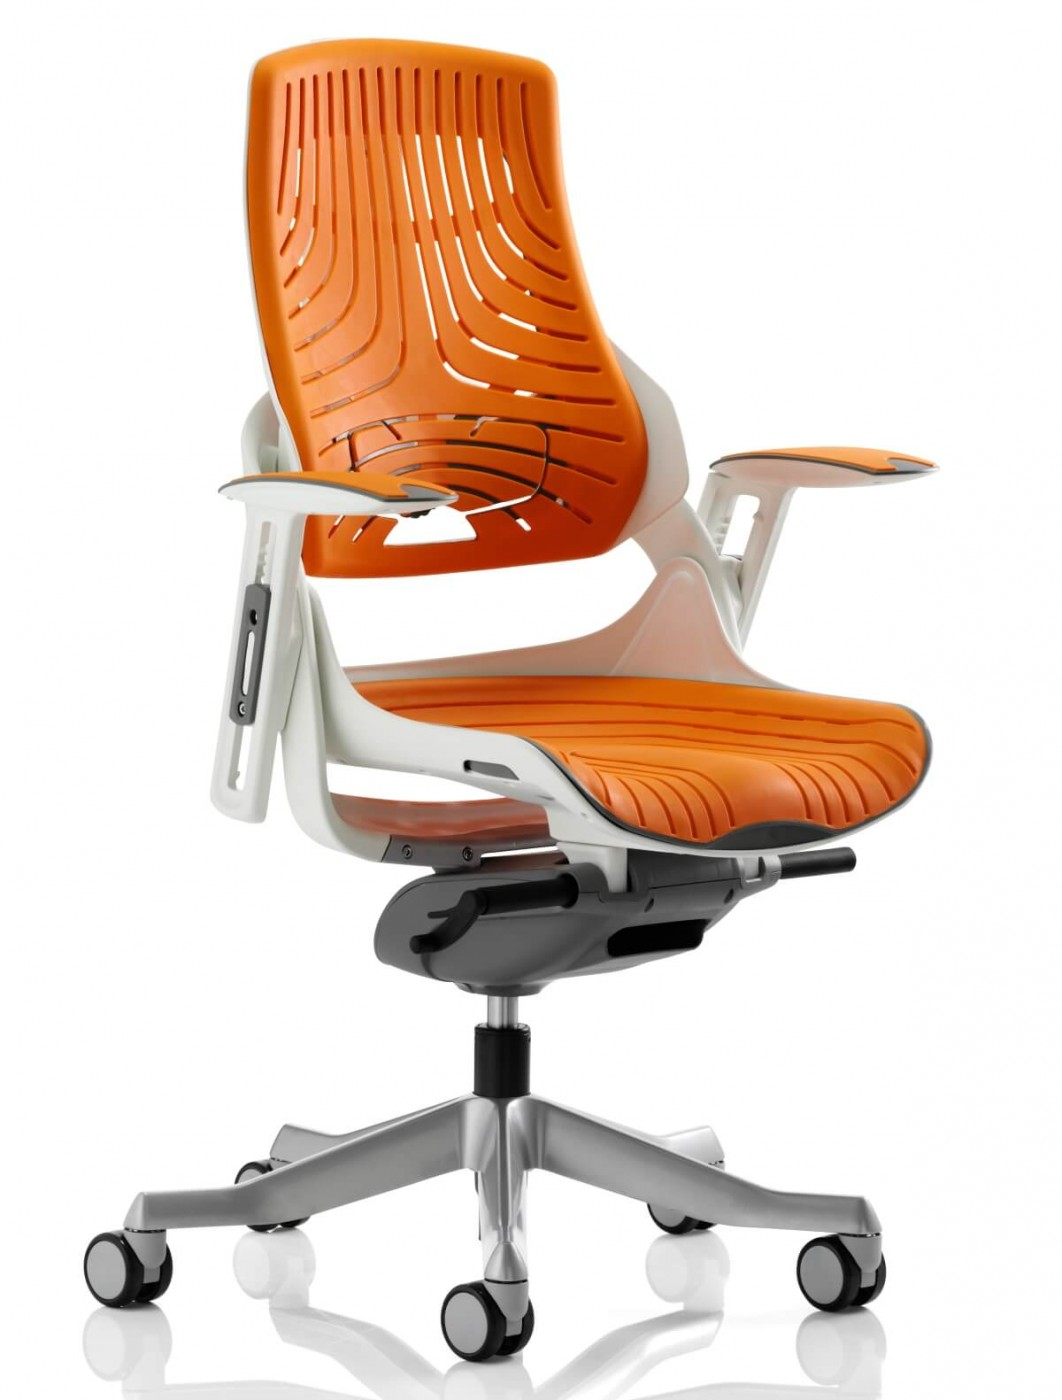 Office chairs zure orange executive elastomer office chair ex000133 enlarged view